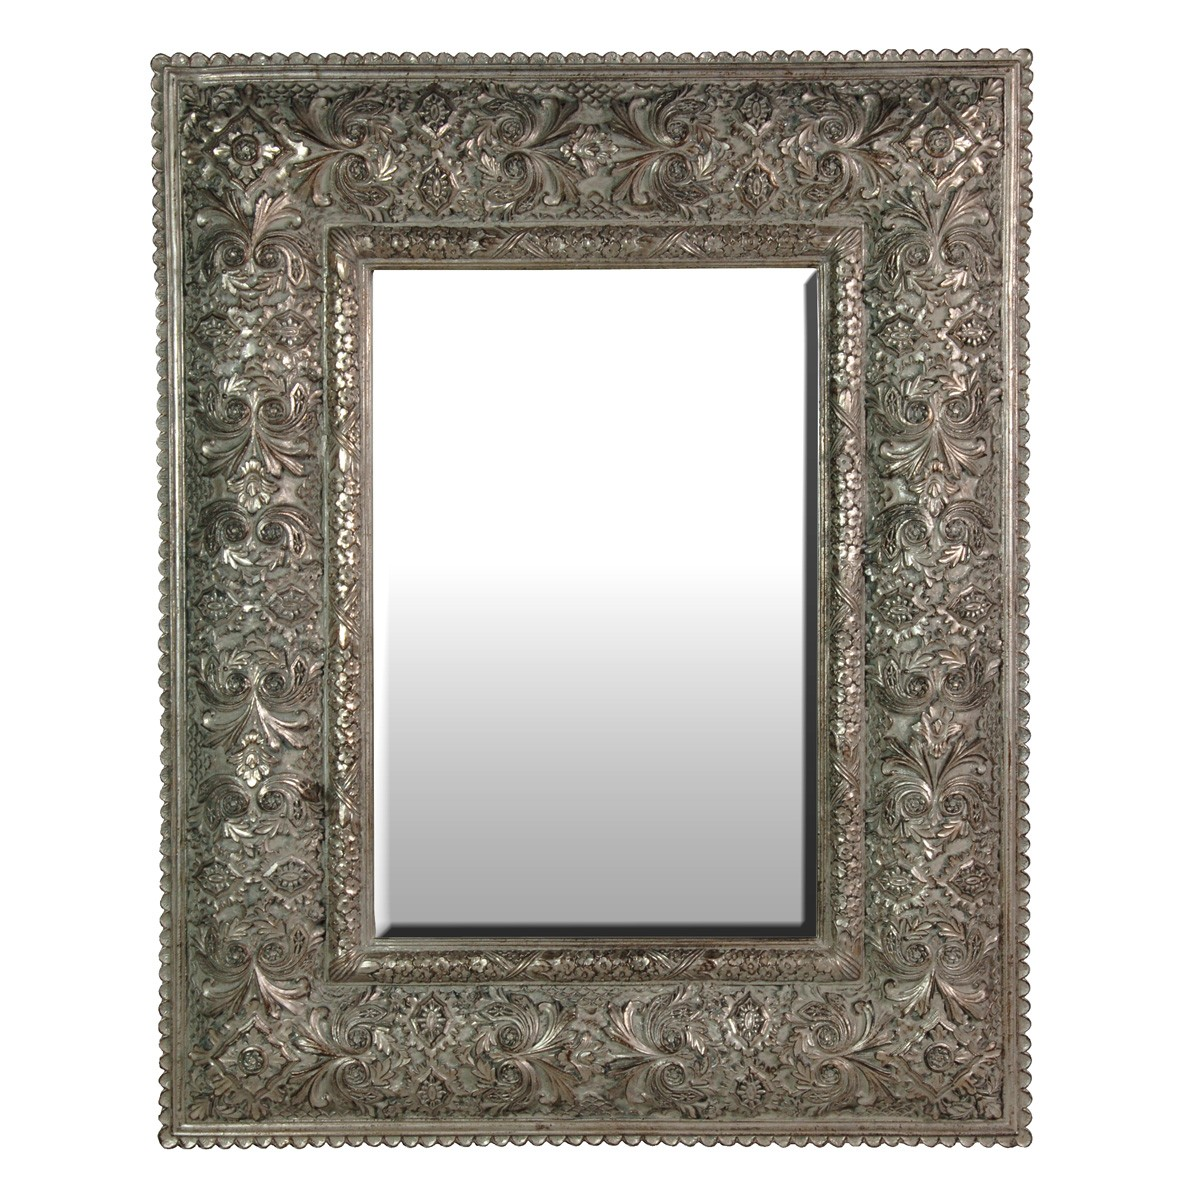 Karma silver wall mirror french bedroom company - Bedroom wall mirrors ...